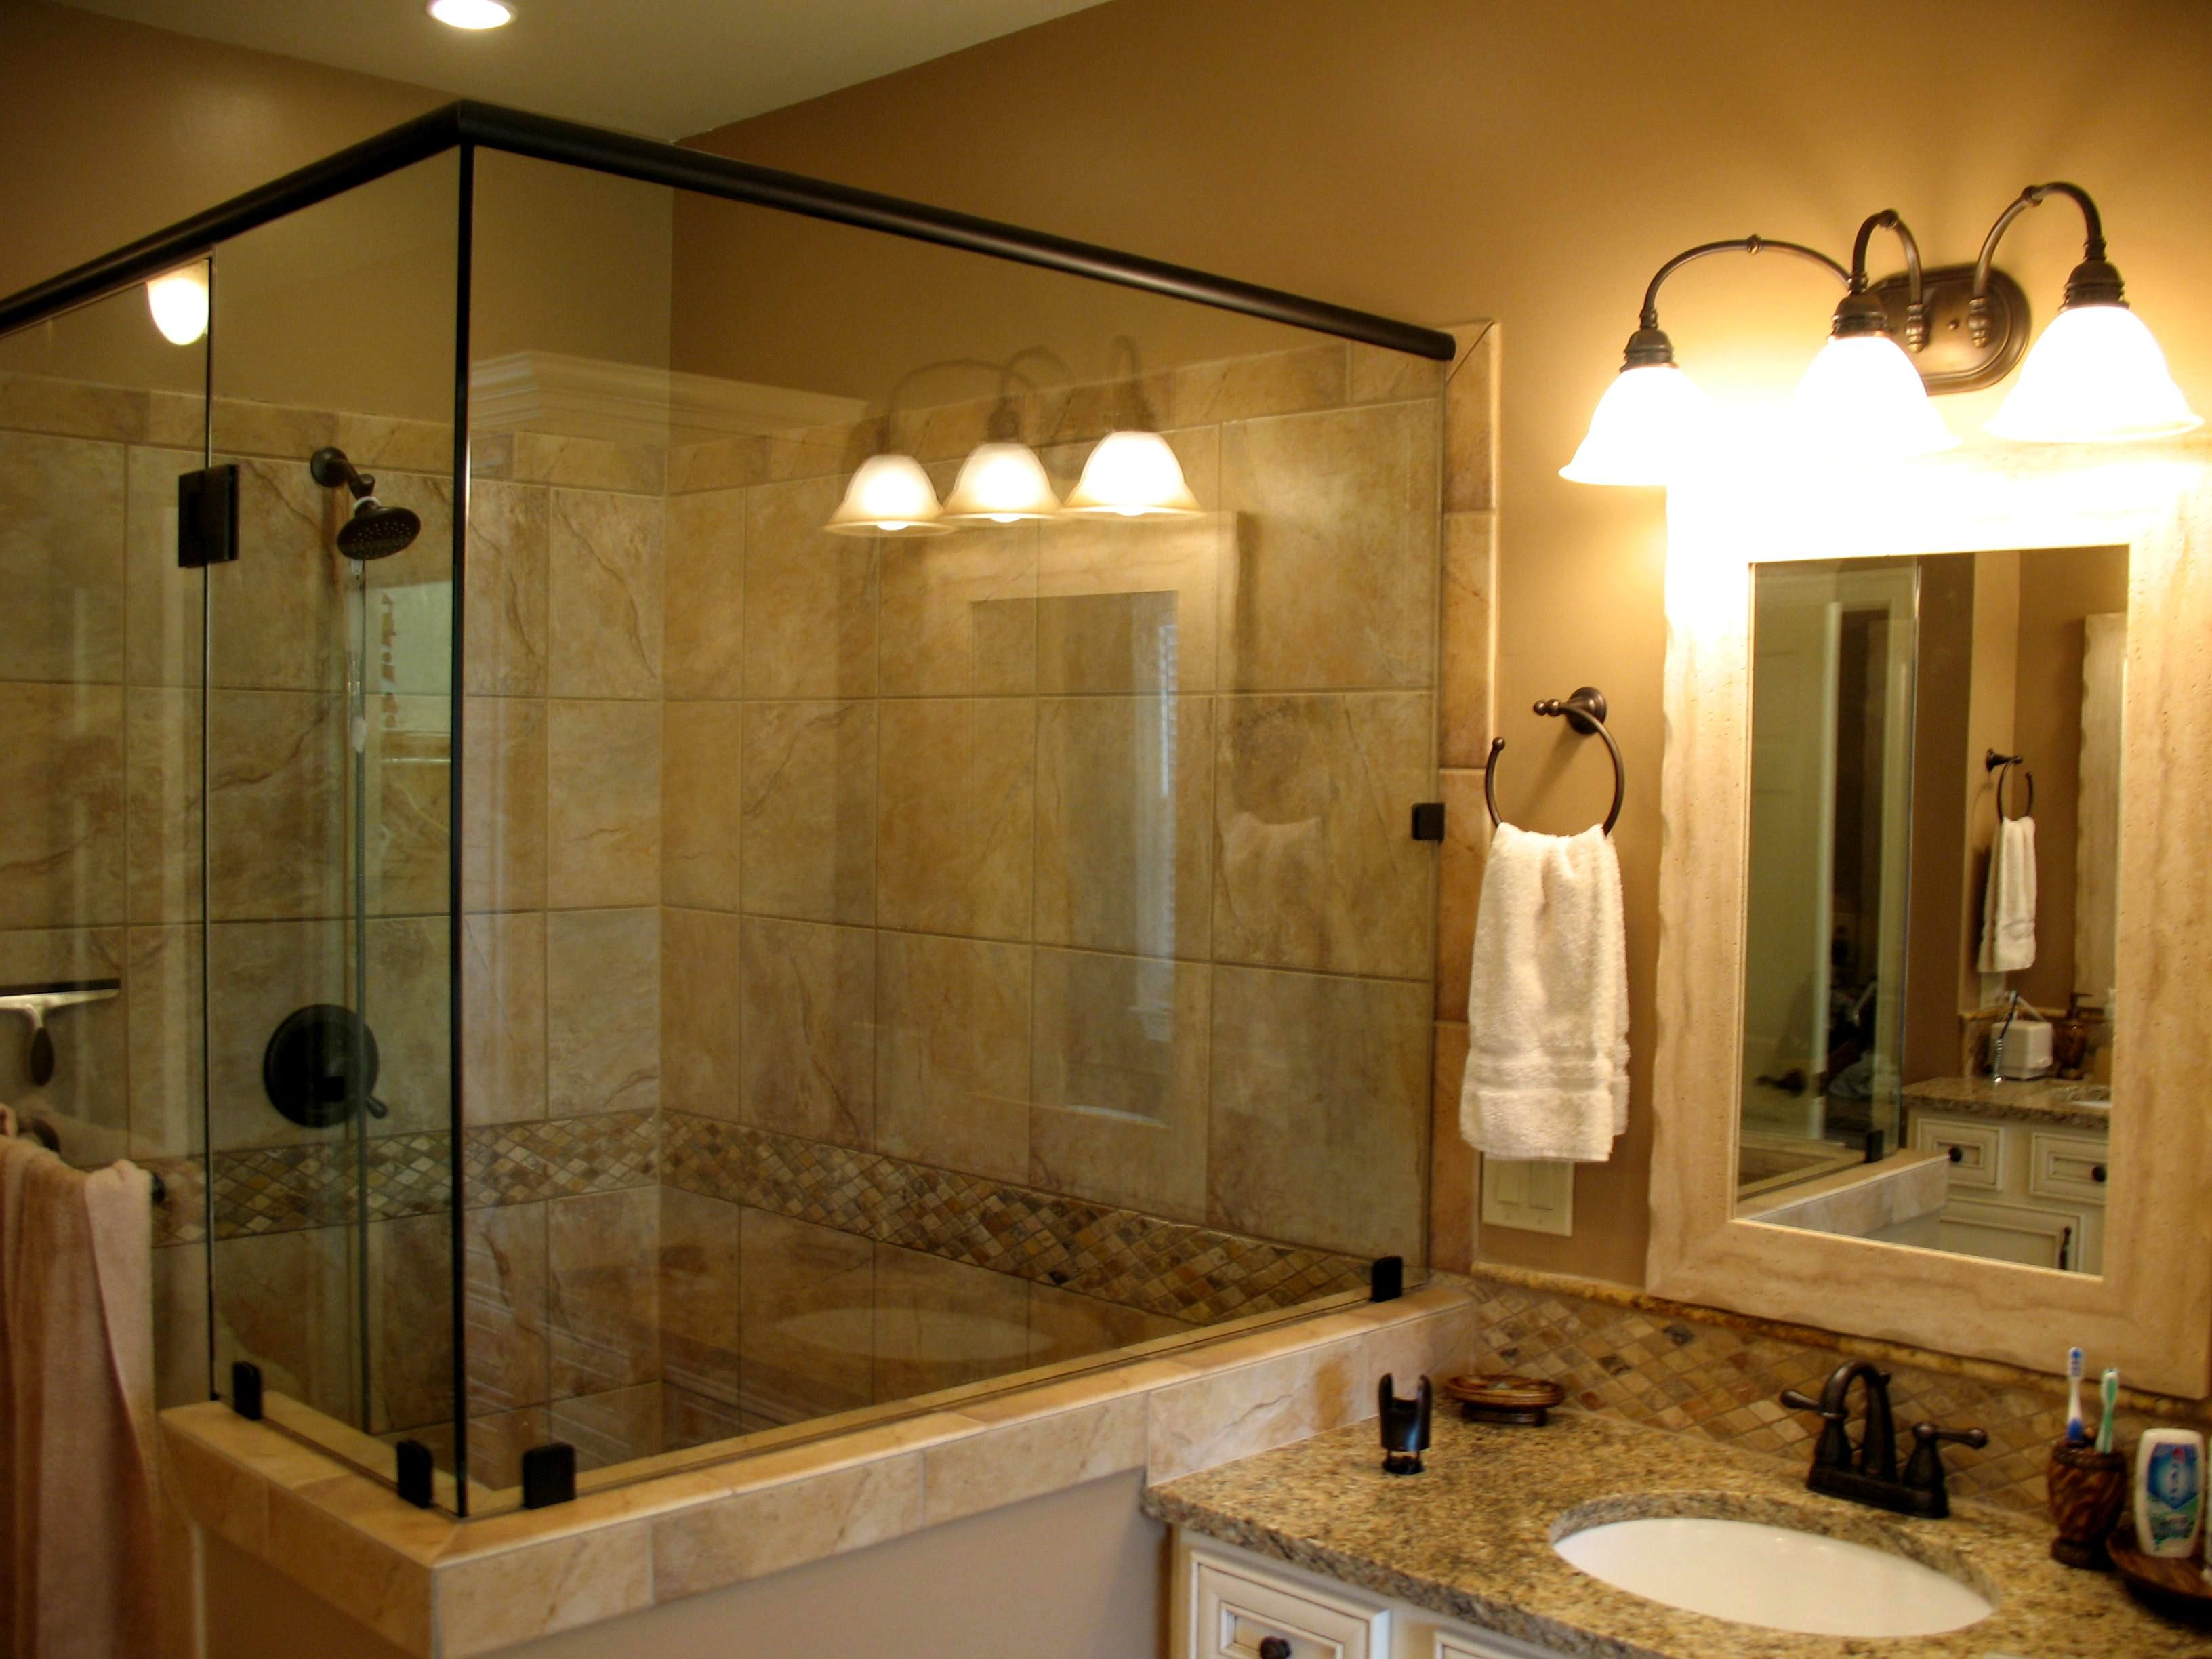 bridgewater co professionally basic bathroom october bathrooms remodeling completed contractors nj remodeled projects the